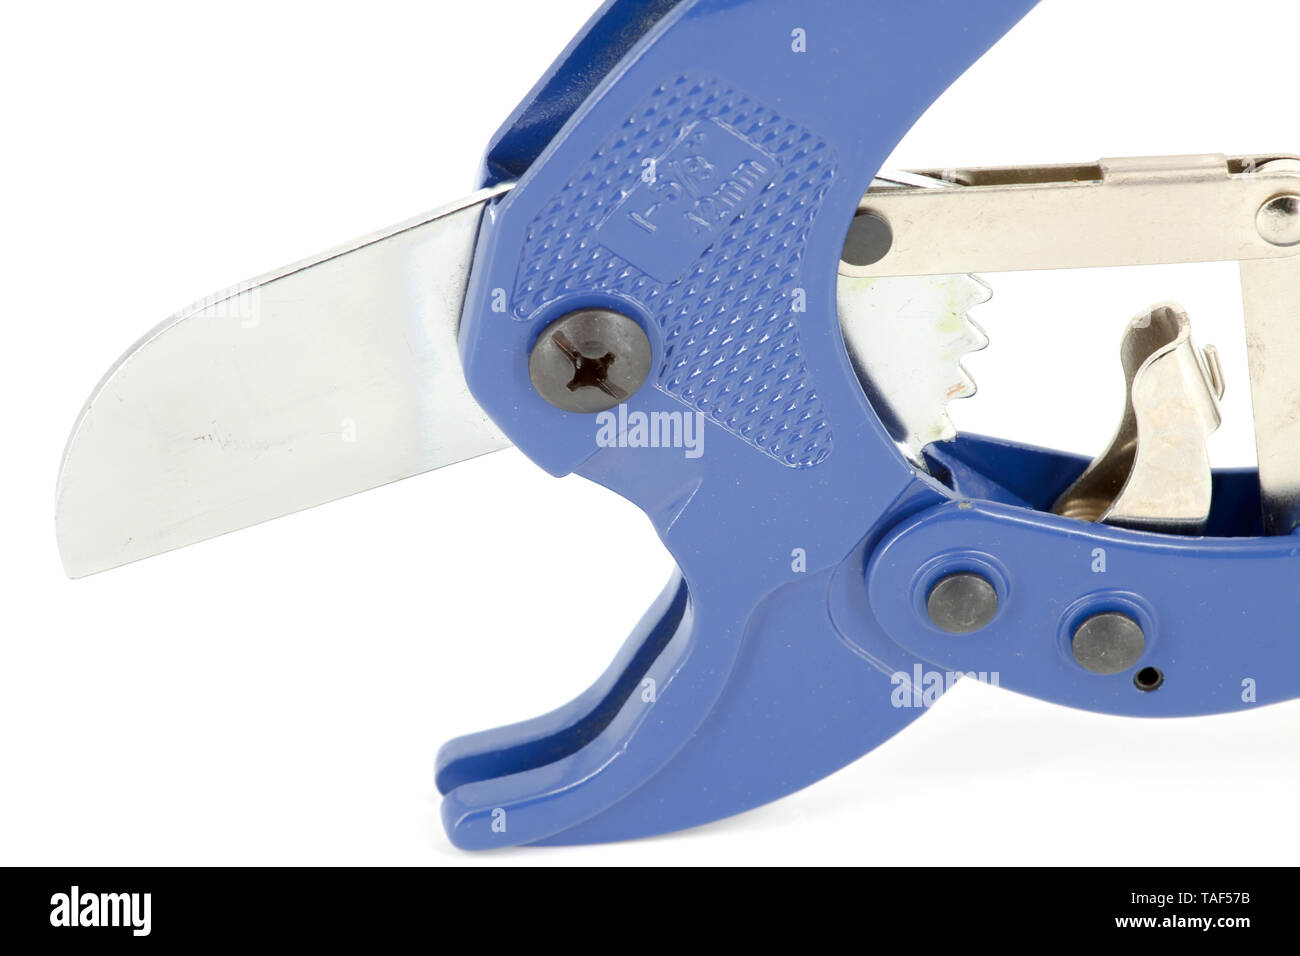 Blue scissors specially used for cutting polypropylene tubes